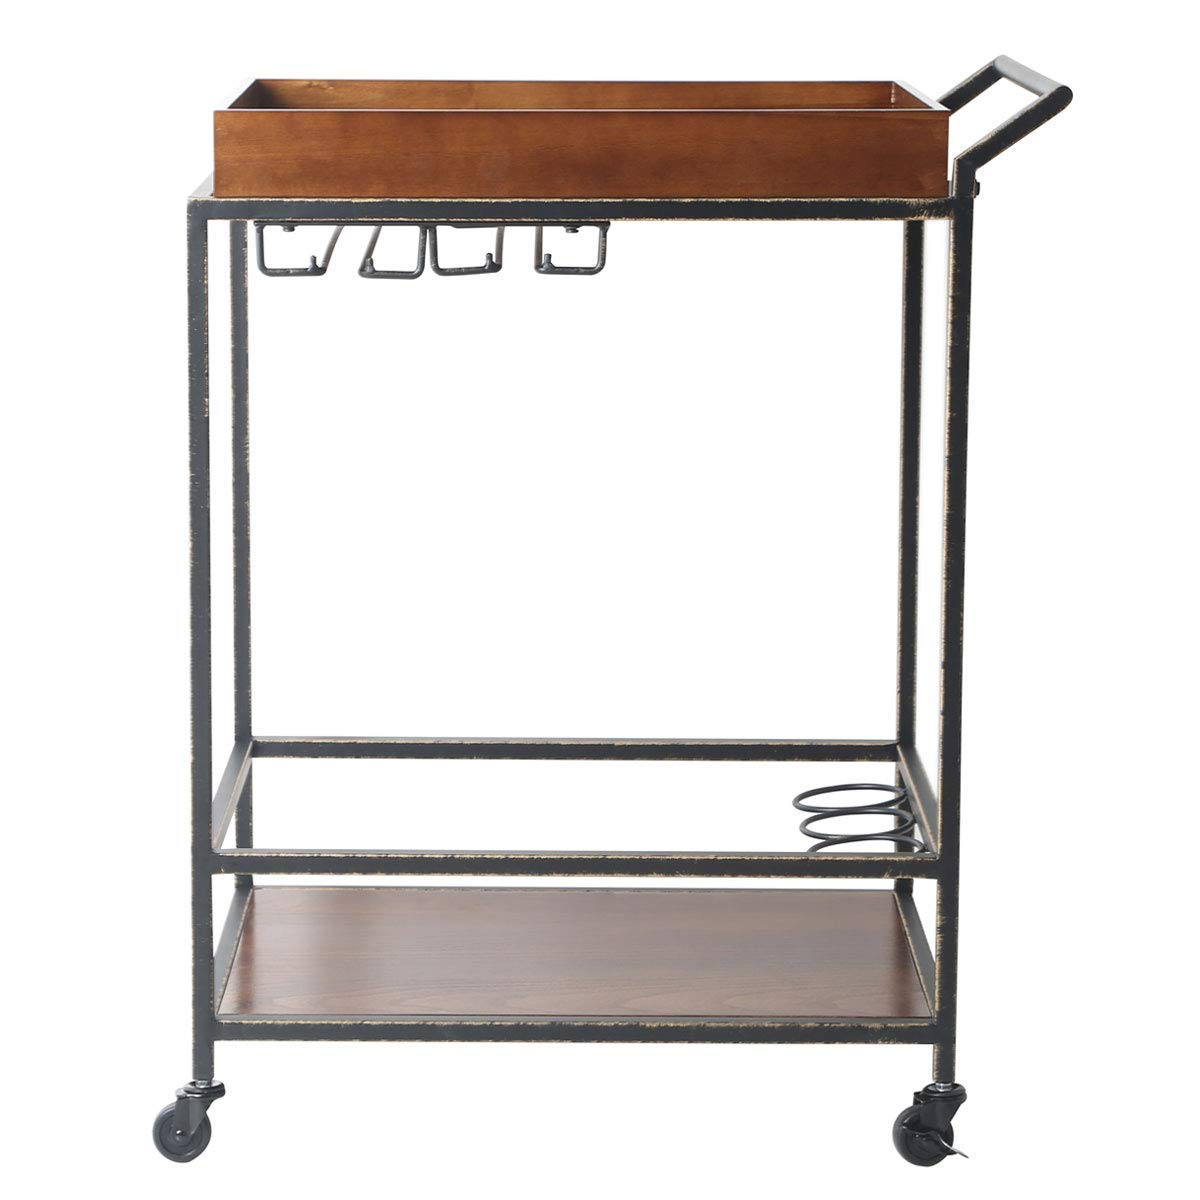 2 Tier Kitchen Bar Serving Cart - Rolling Utility Storage Bar Cart with Bottle Holder, Solid Wood, Brown